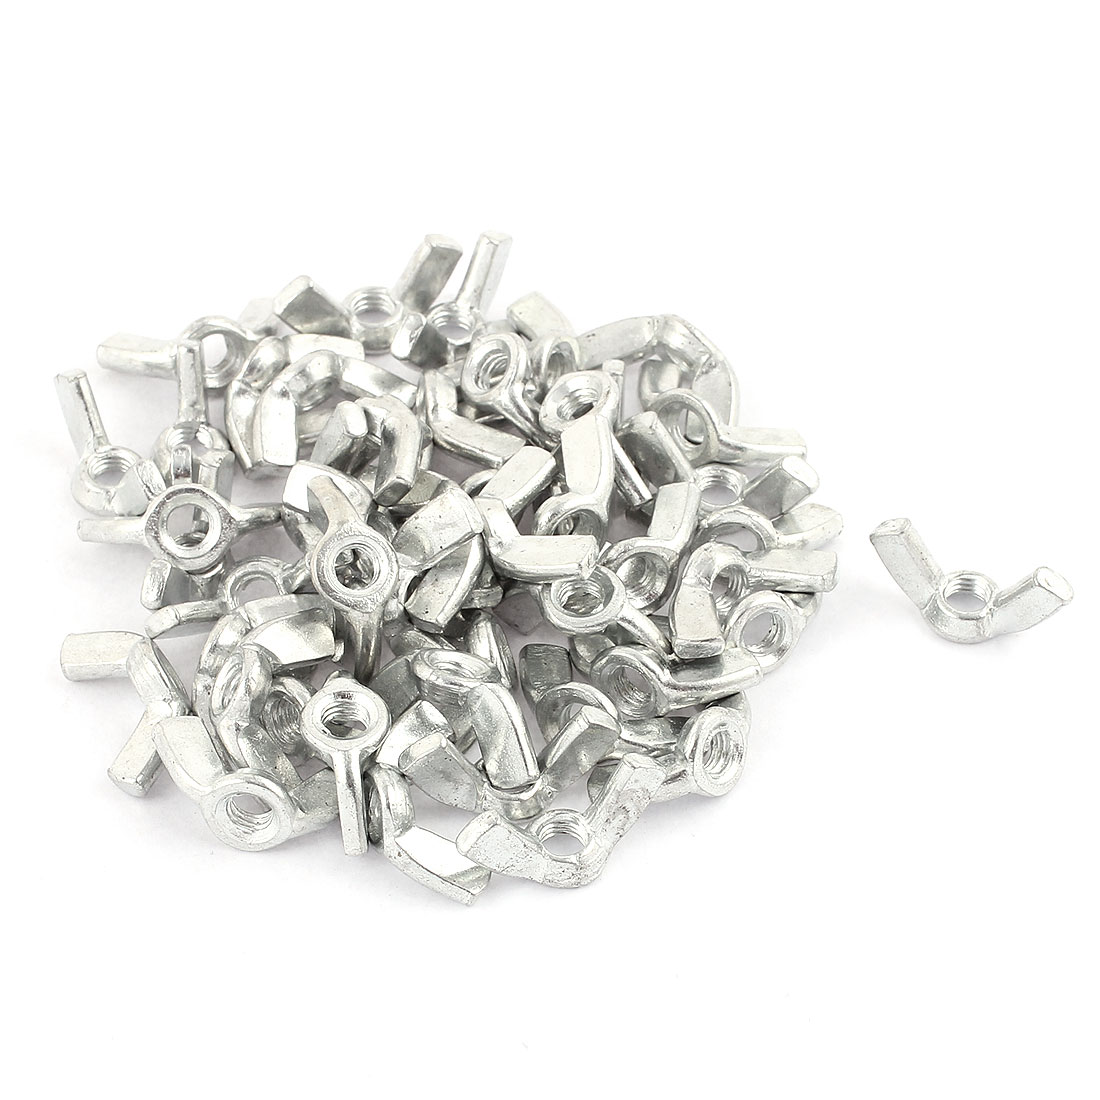 50Pcs M5 x 9.5mm Thread Zinc Plated Steel Nuts Wing Nut Silver Tone